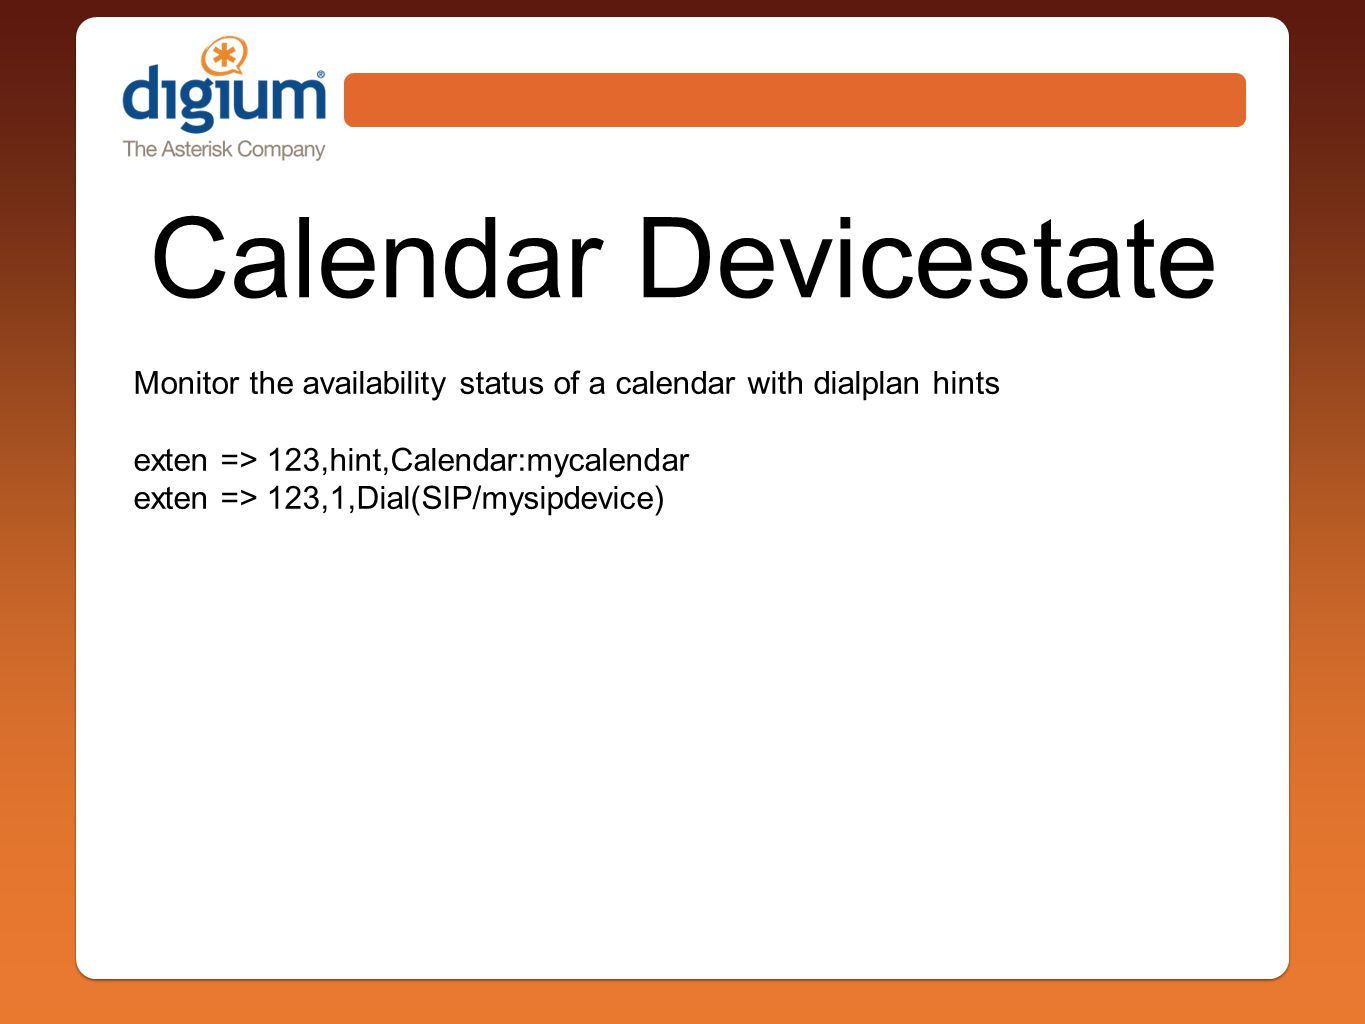 Calendar Devicestate Monitor the availability status of a calendar with dialplan hints exten => 123,hint,Calendar:mycalendar exten => 123,1,Dial(SIP/mysipdevice)